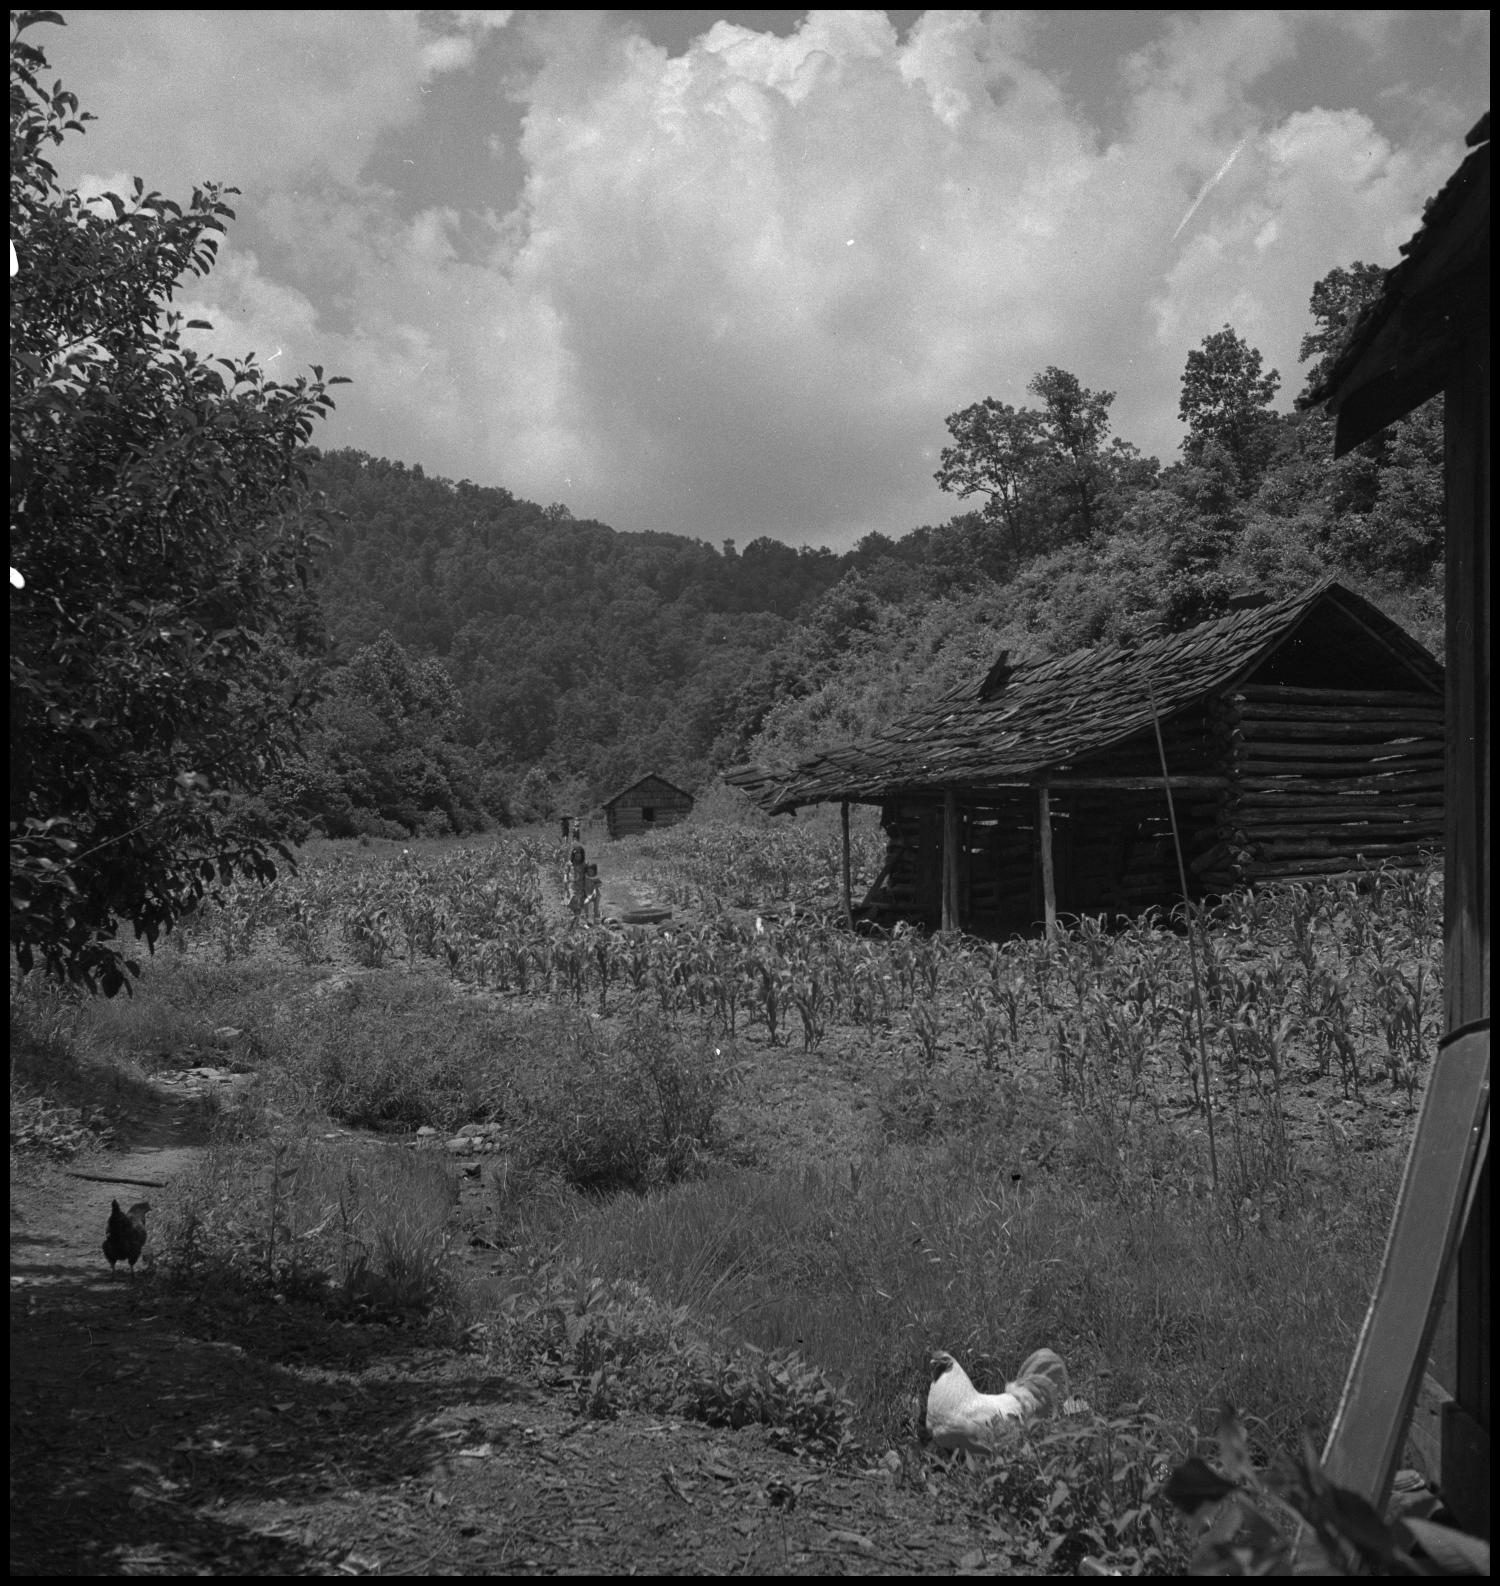 [Farm trails], Photograph of two girls walking down a harvested path by two homes. In the image, two more people can be seen walking further behind and two chickens are on the other side of the fence close to the camera. The homes are made of wood and sit in the valley of two large mountains.,